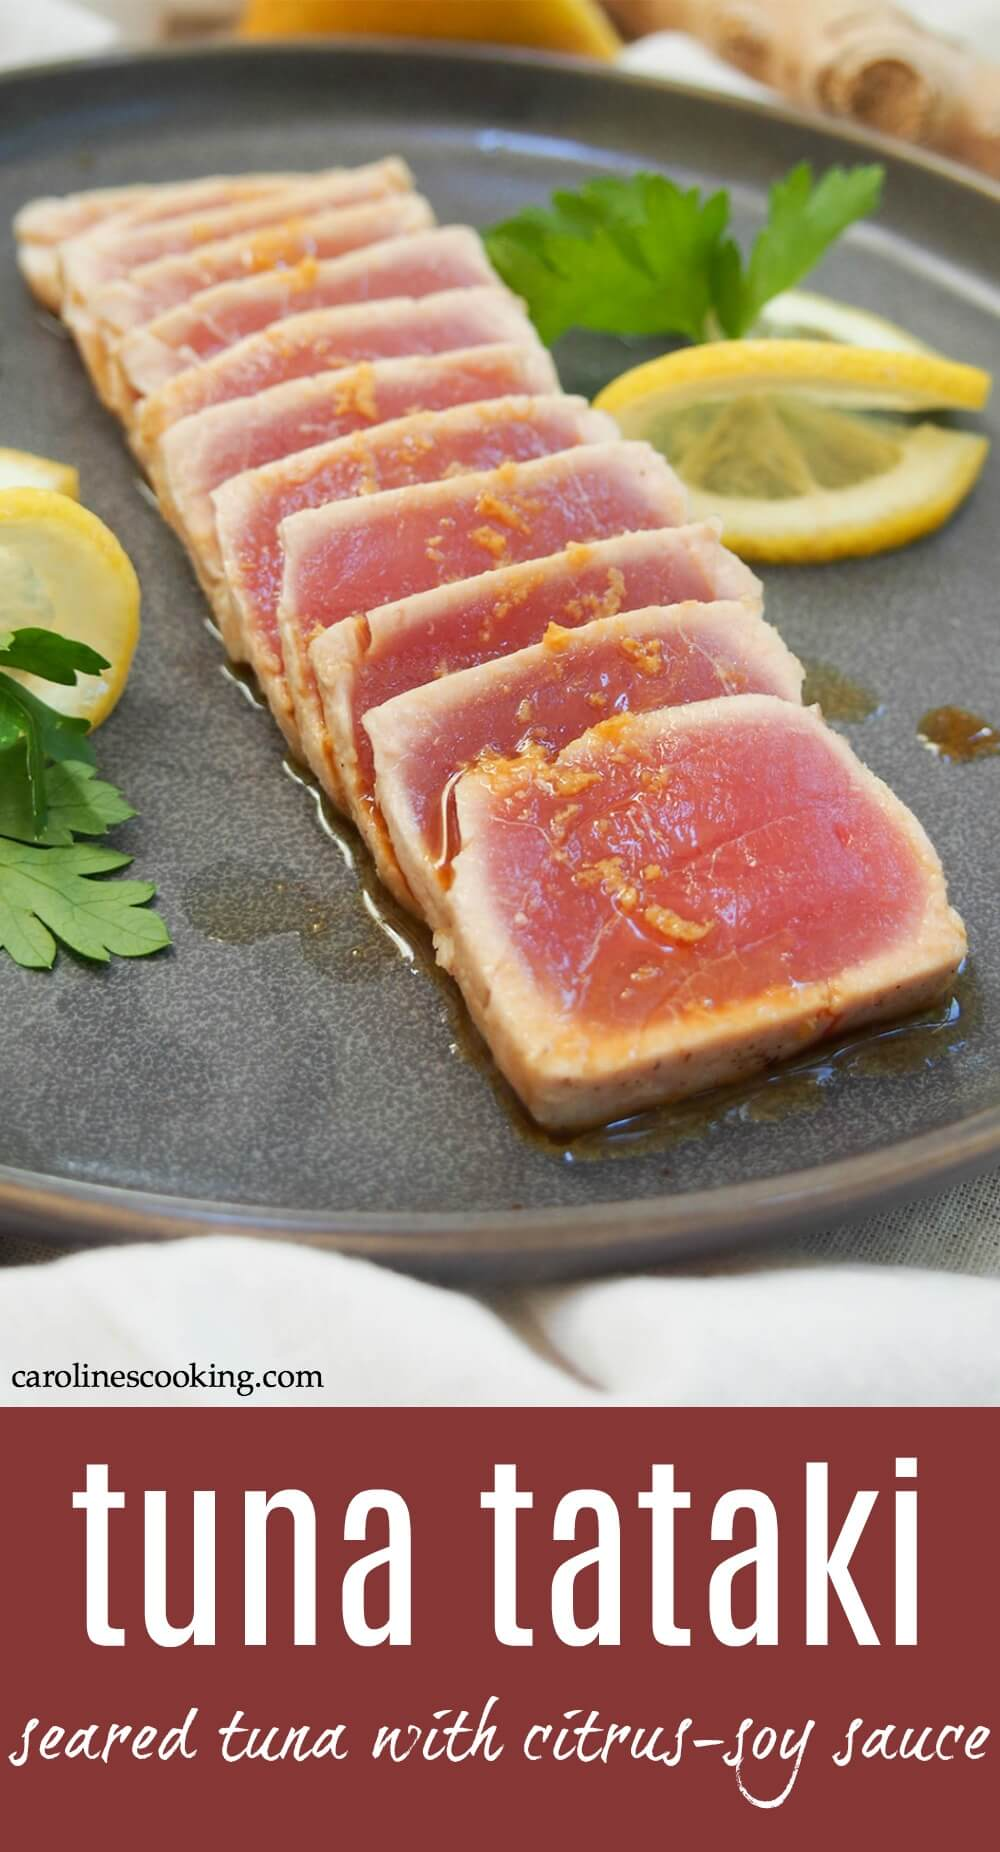 Tuna tataki is a simple Japanese dish that combines delicate, gently-seared tuna with a citrus-soy sauce, given a gentle ginger kick. It's easy to make and makes a great appetizer or component to a light bento box-style meal. #tuna #japanesefood #searedtuna #ponzu